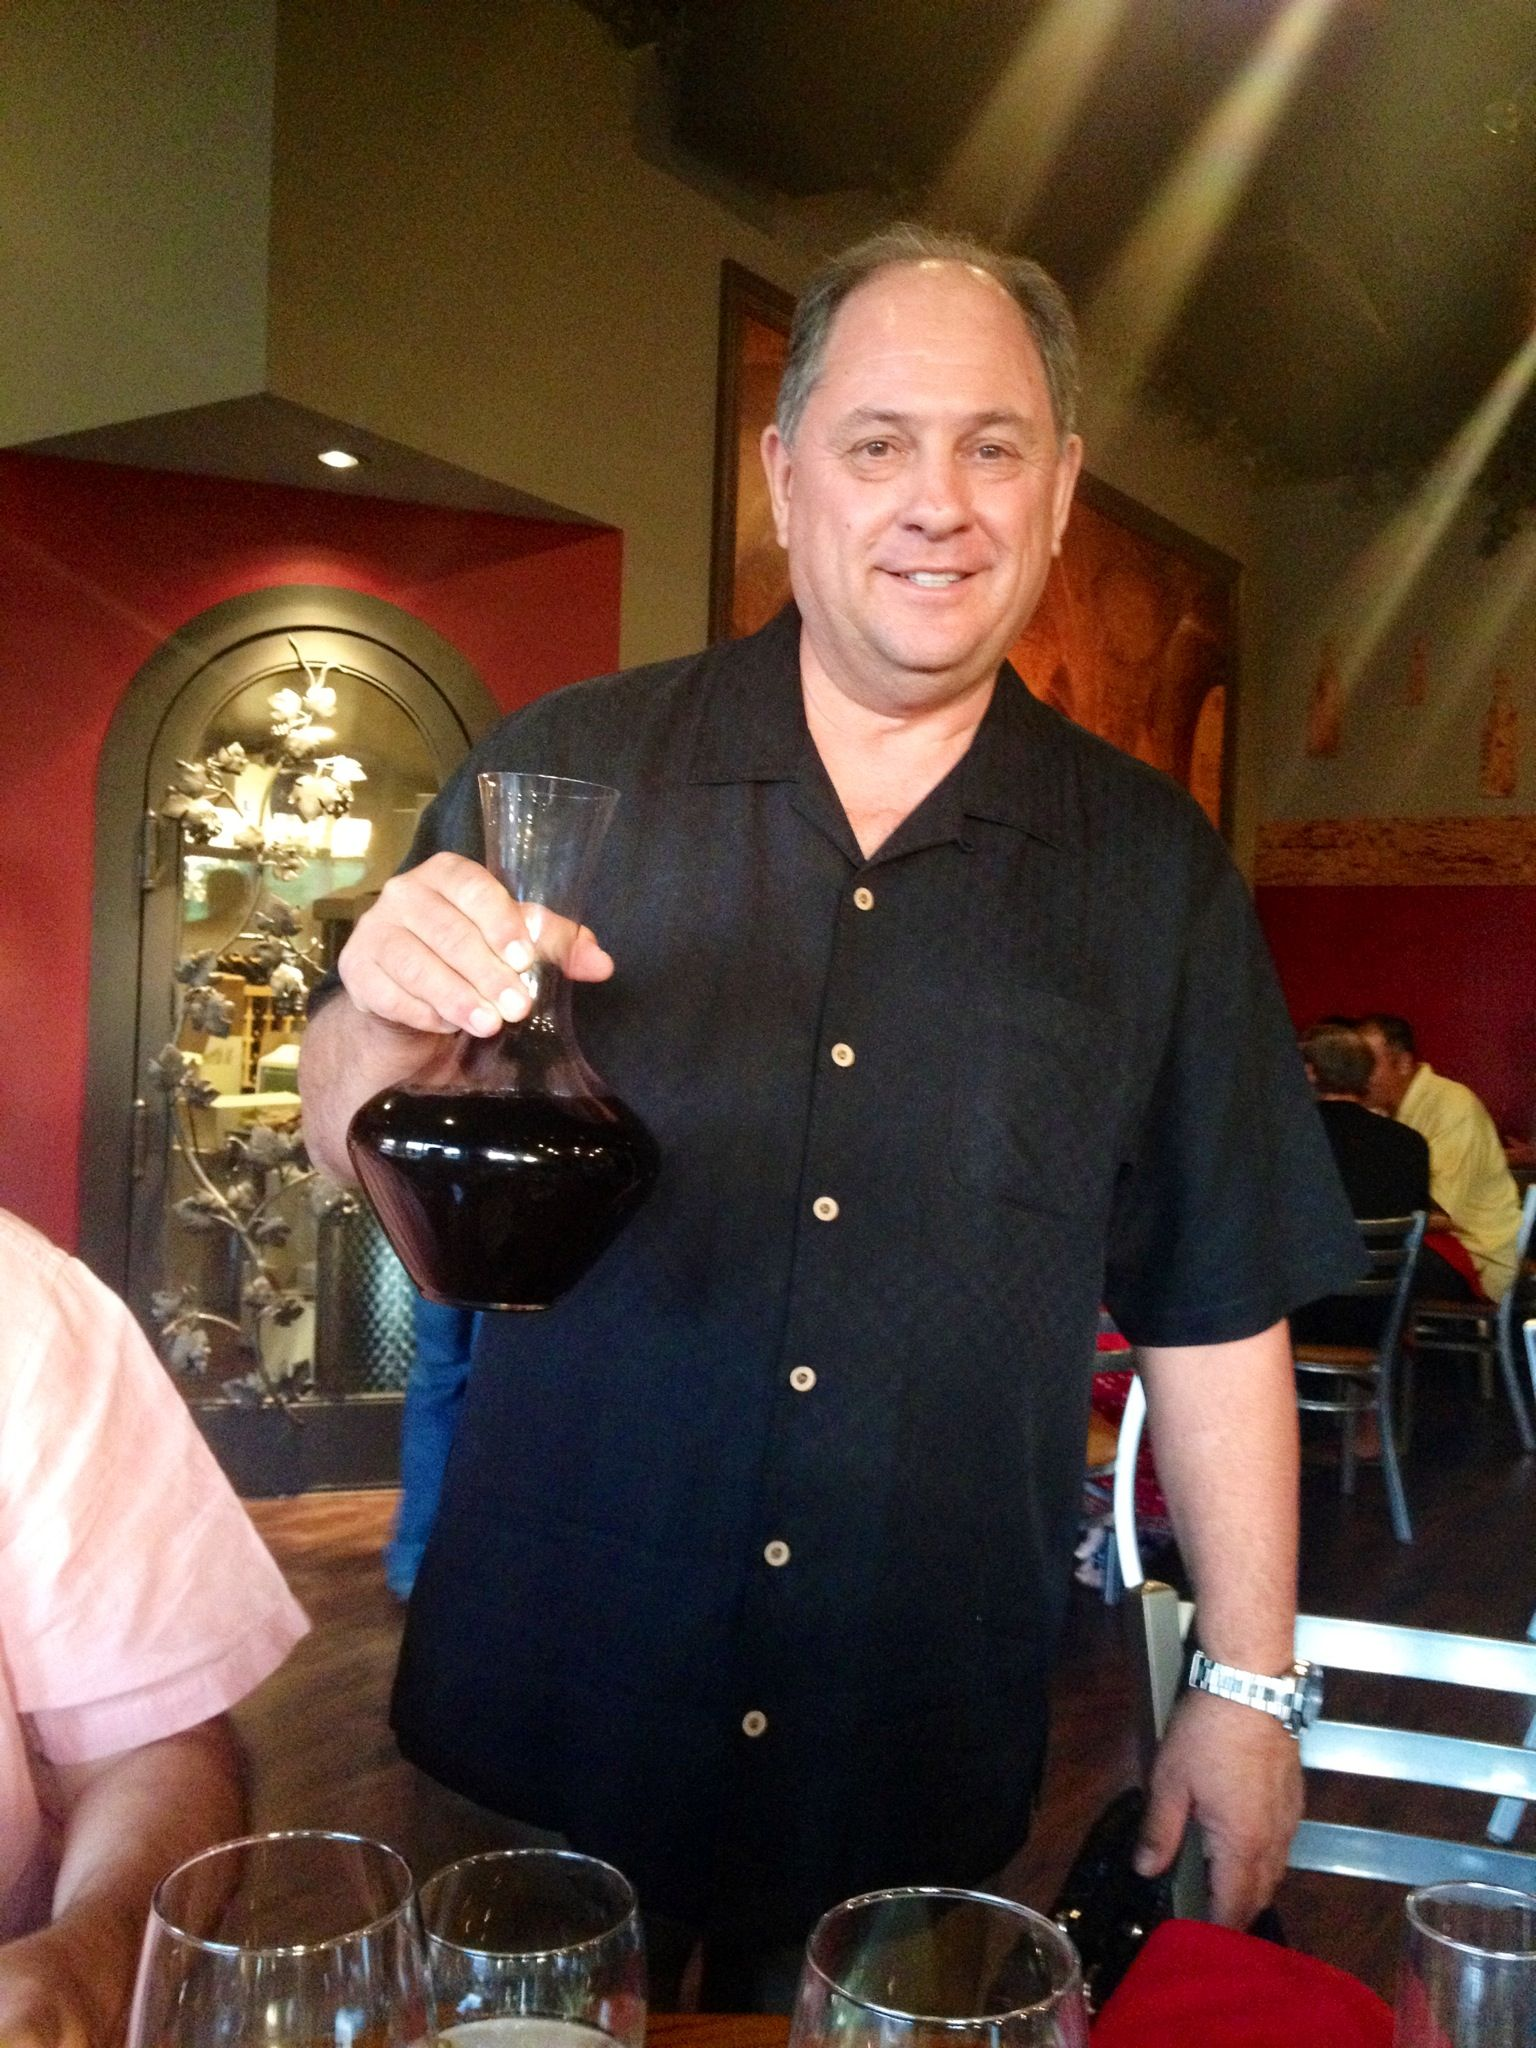 Frank Yaconis, Owner of Twisted Rose Winery and Eatery in Scottsdale, AZ